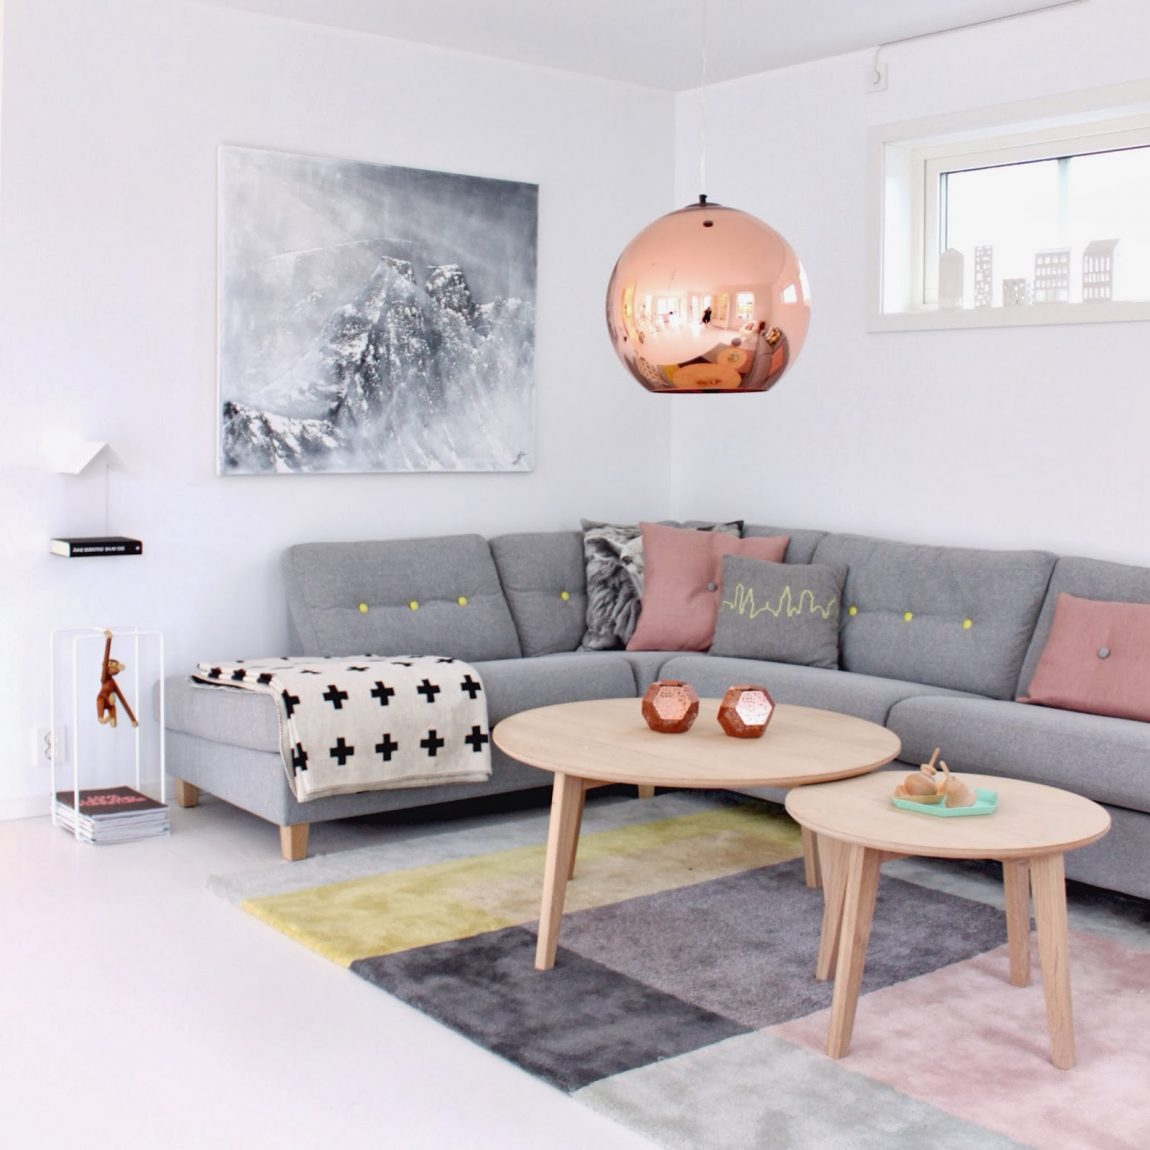 Grote Hanglamp Bol Tom Dixon Copper Round Hanglamp | Inrichting-huis.com